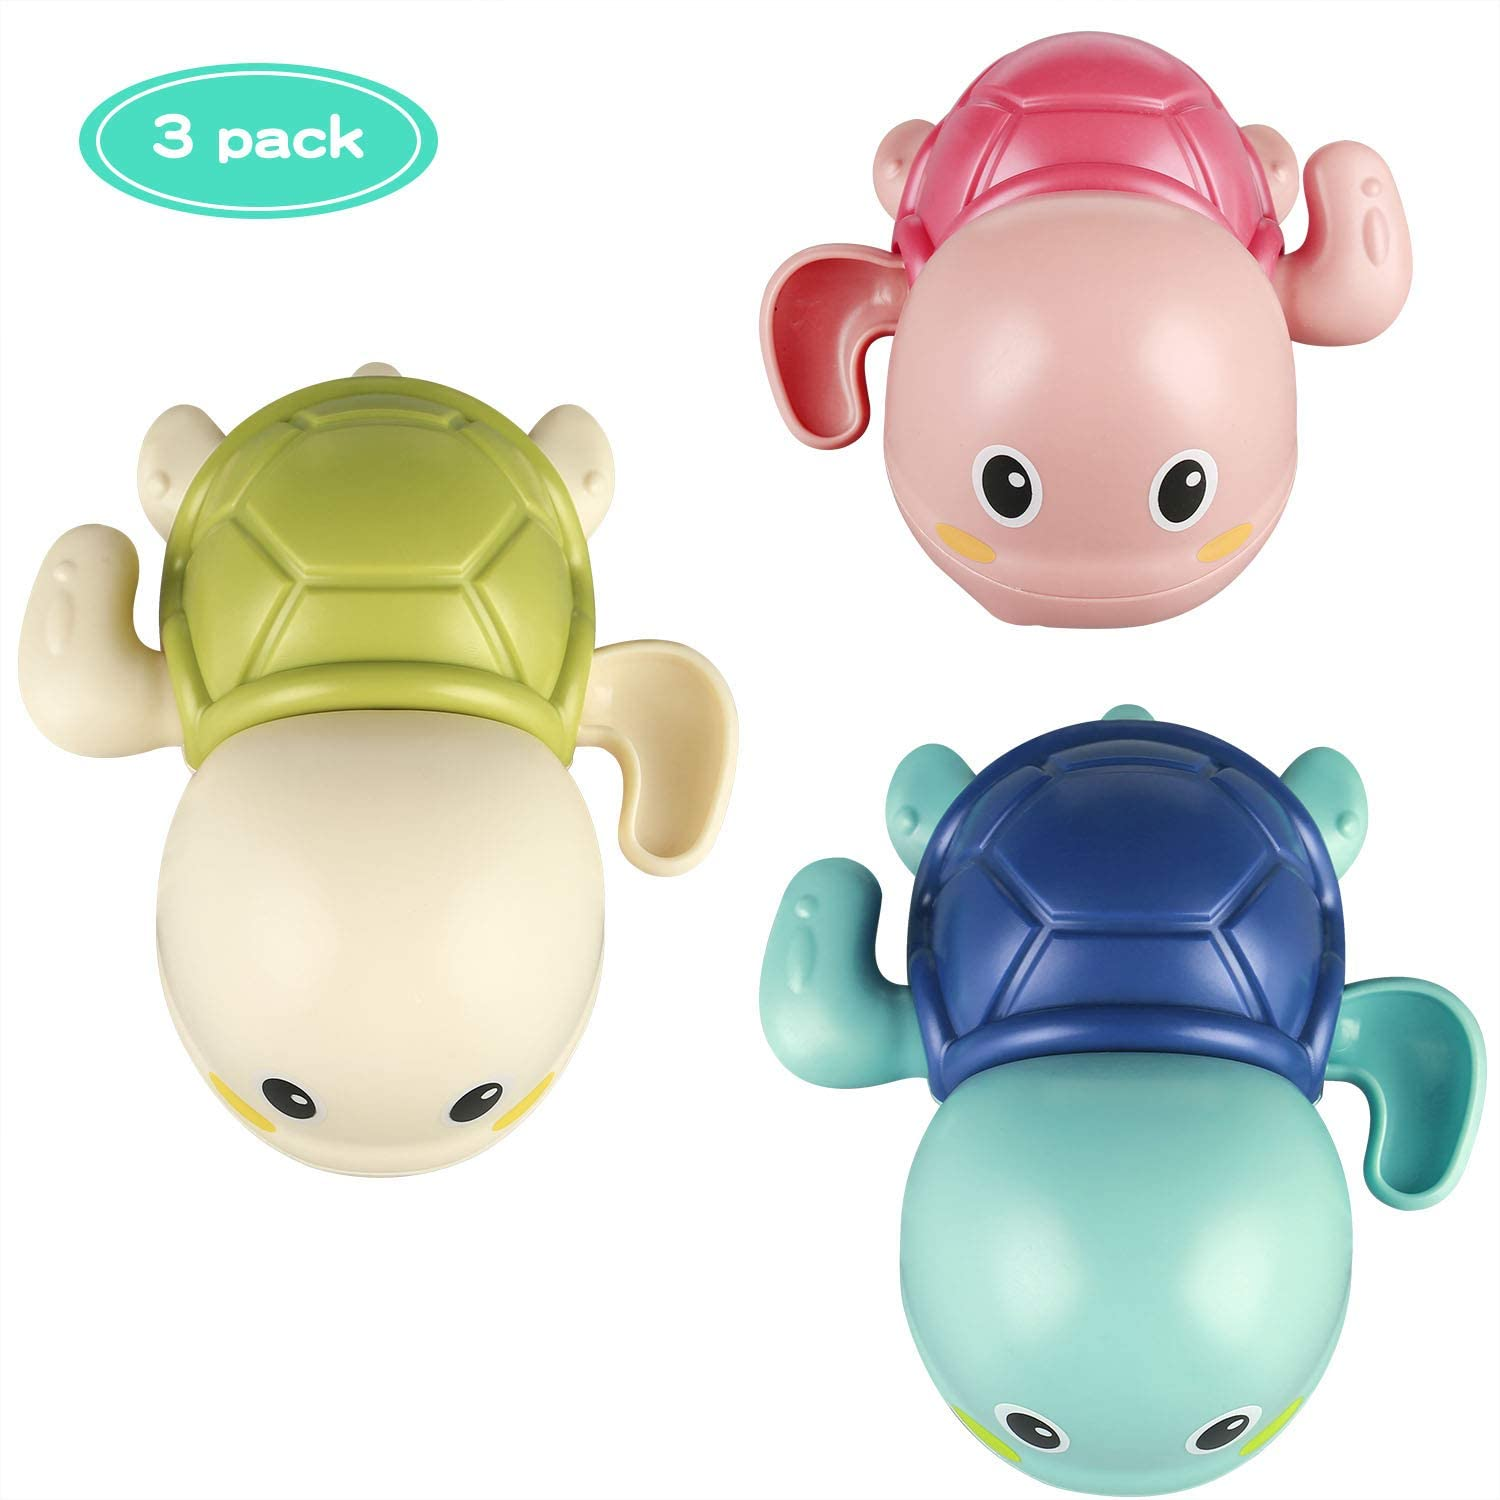 Baby Bath Toys Wind up Turtle Toys Multi-Colors Floating Toy Swimming Bathtub, Beach, Pool Playset for Kids Toddler Boys and Girls (3 Packs)